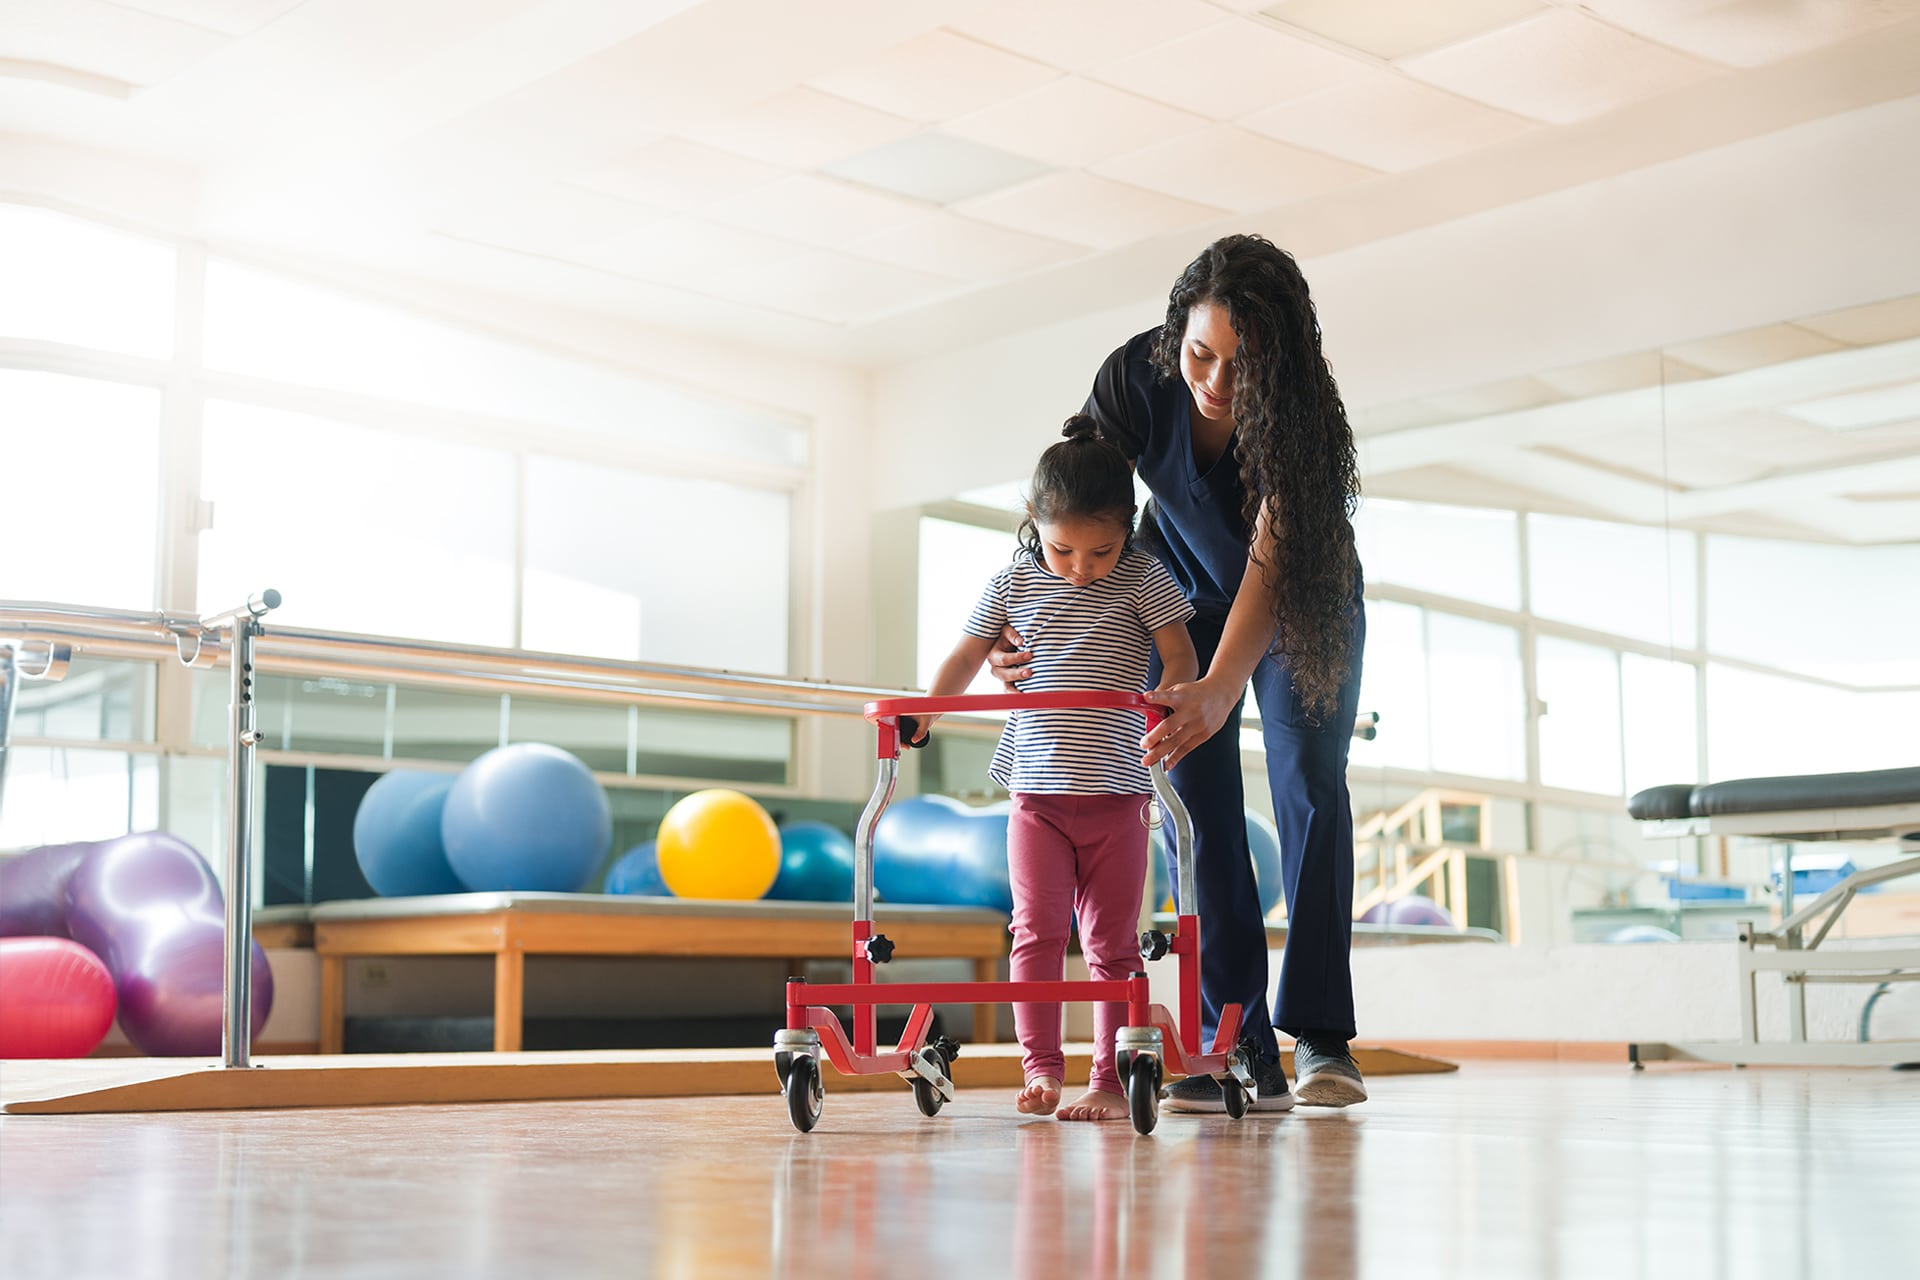 Women physical therapist helping a child learn to walk